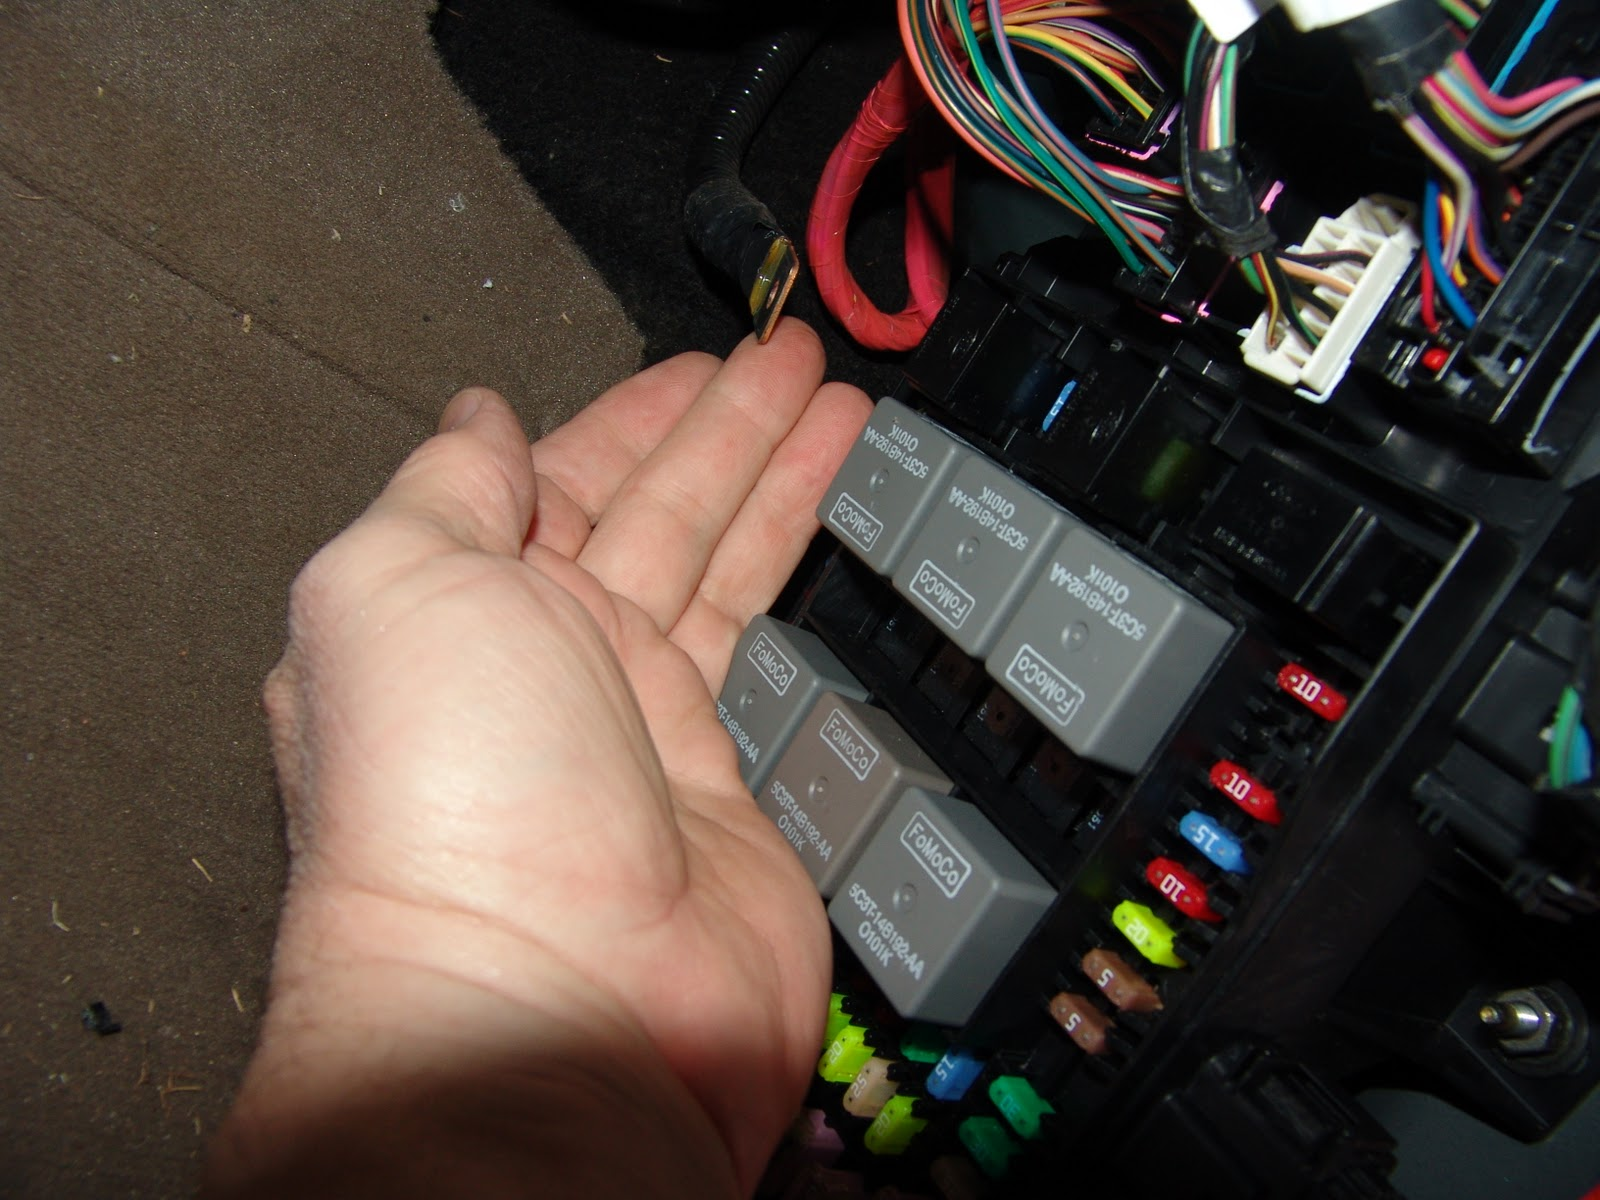 Brake Pedal Goes To The Floor in addition Ford Fiesta moreover Porsche Paint Codes 1 Photograph Exquisite Code Label Located The Spare Tire Area 7 likewise Ford Ranger 1998 Under Dash Fuse Boxblock Circuit Breaker Diagram furthermore 6fiwx Ford Escape Limited Not Starting Shifting Reverse. on 2002 windstar fuse box diagram